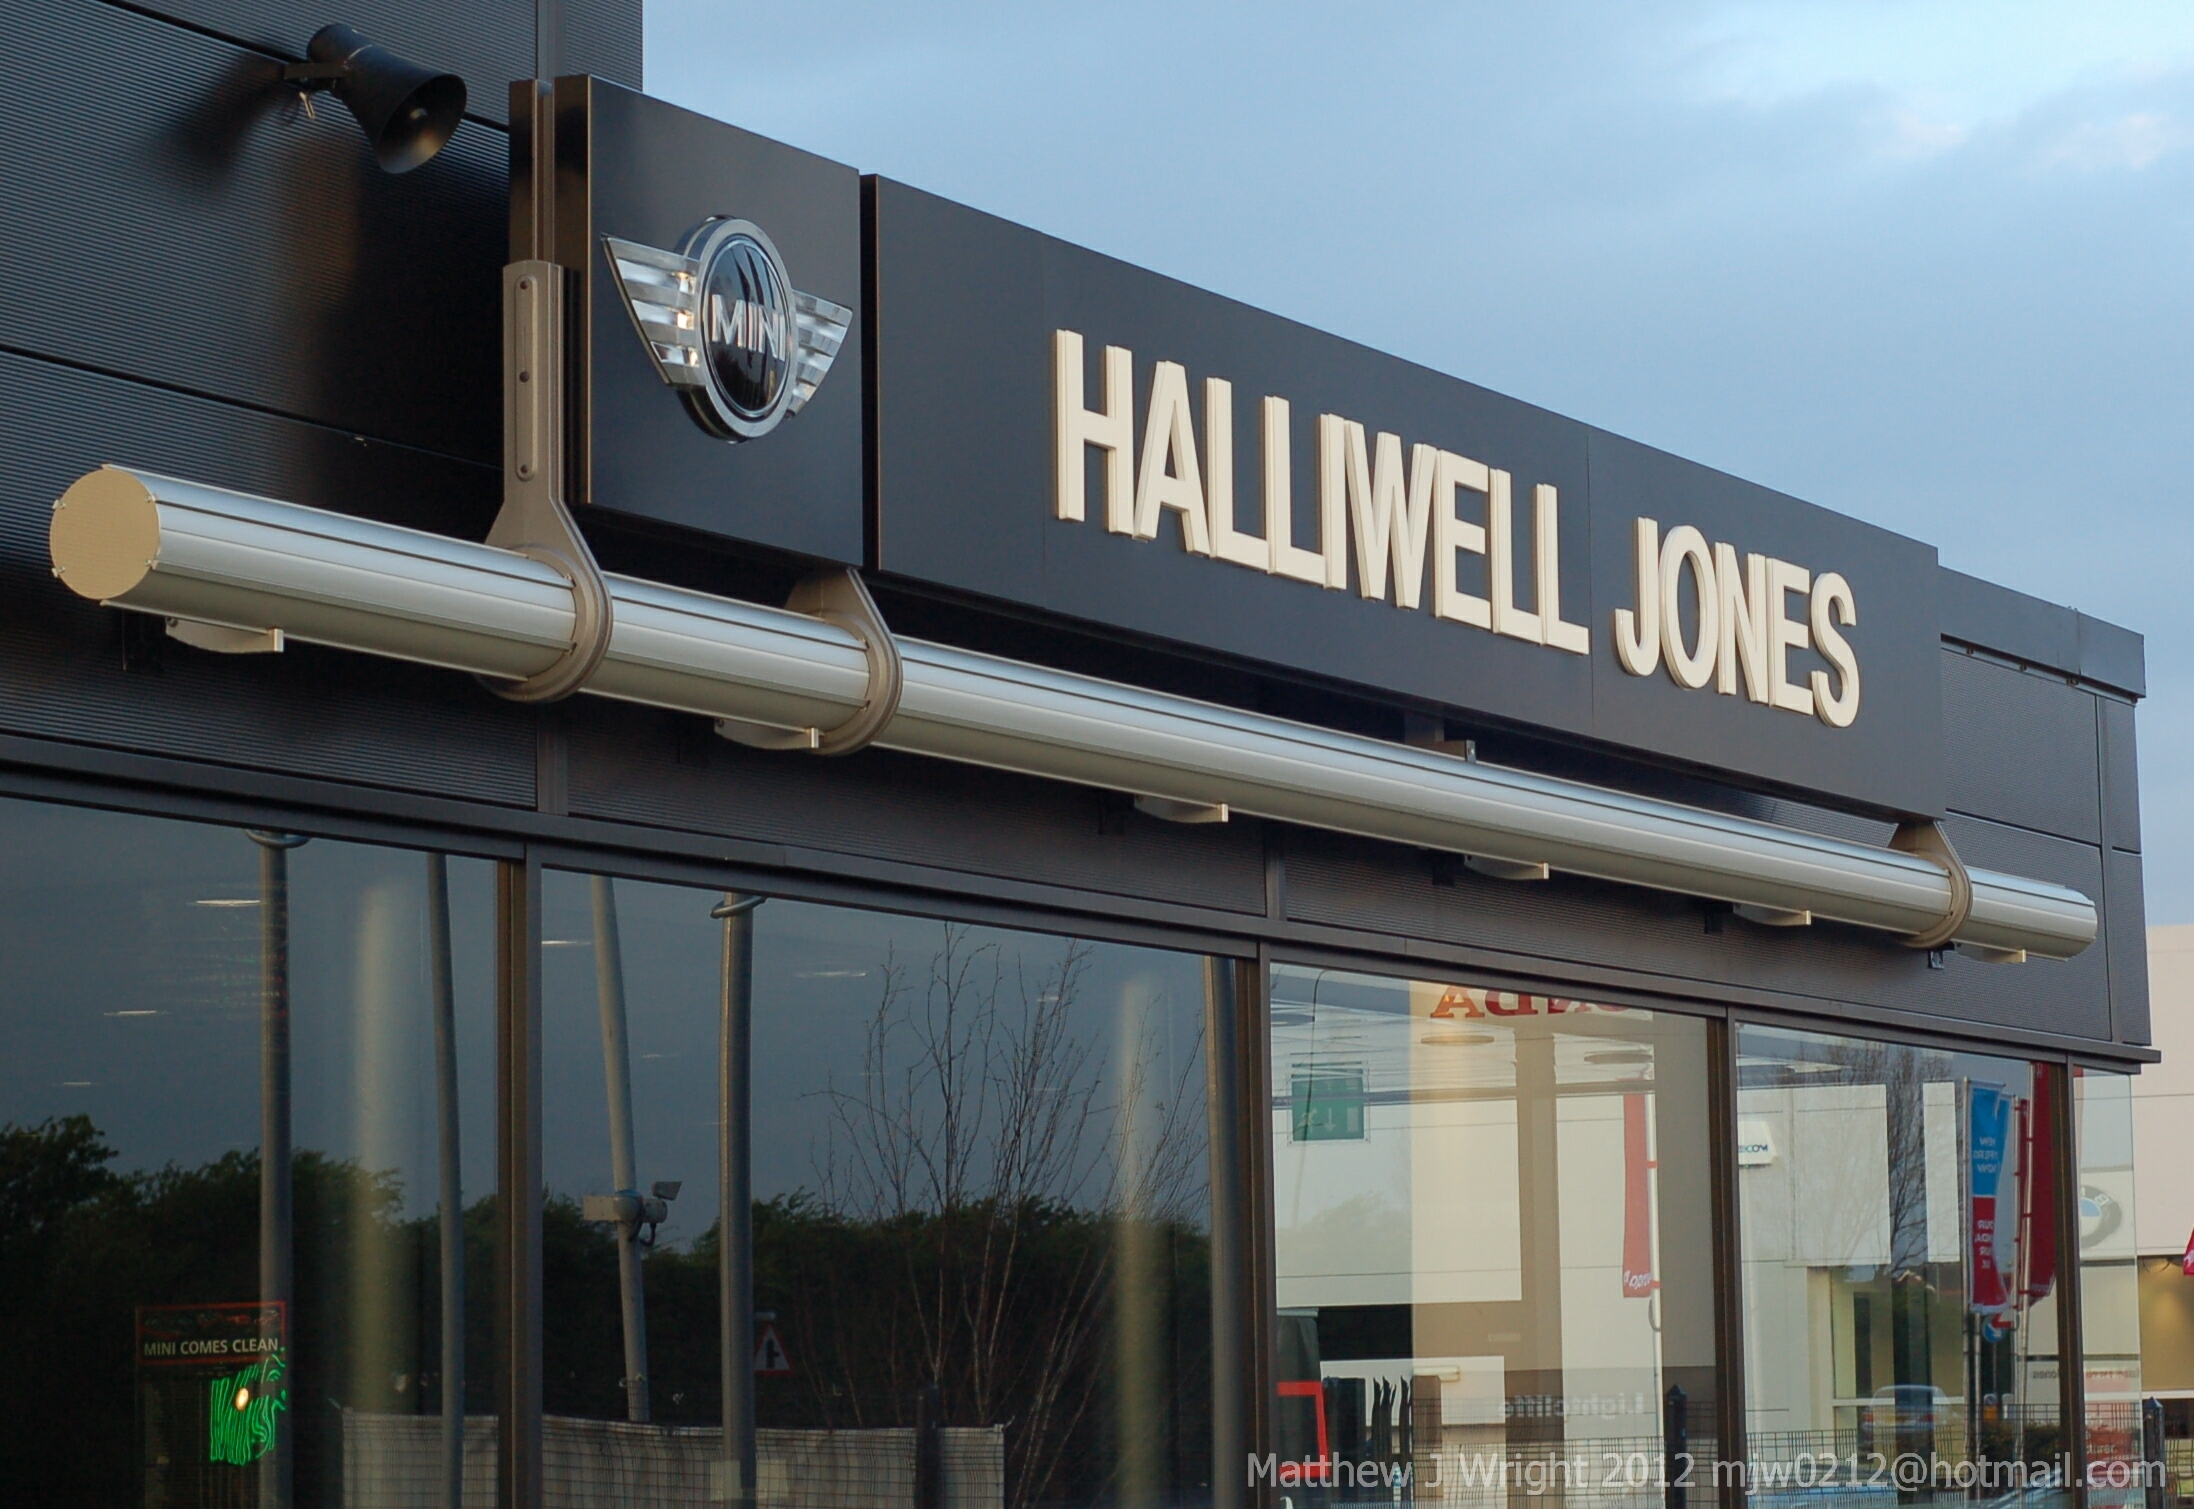 Halliwell Jones Mini Dealership in Southport